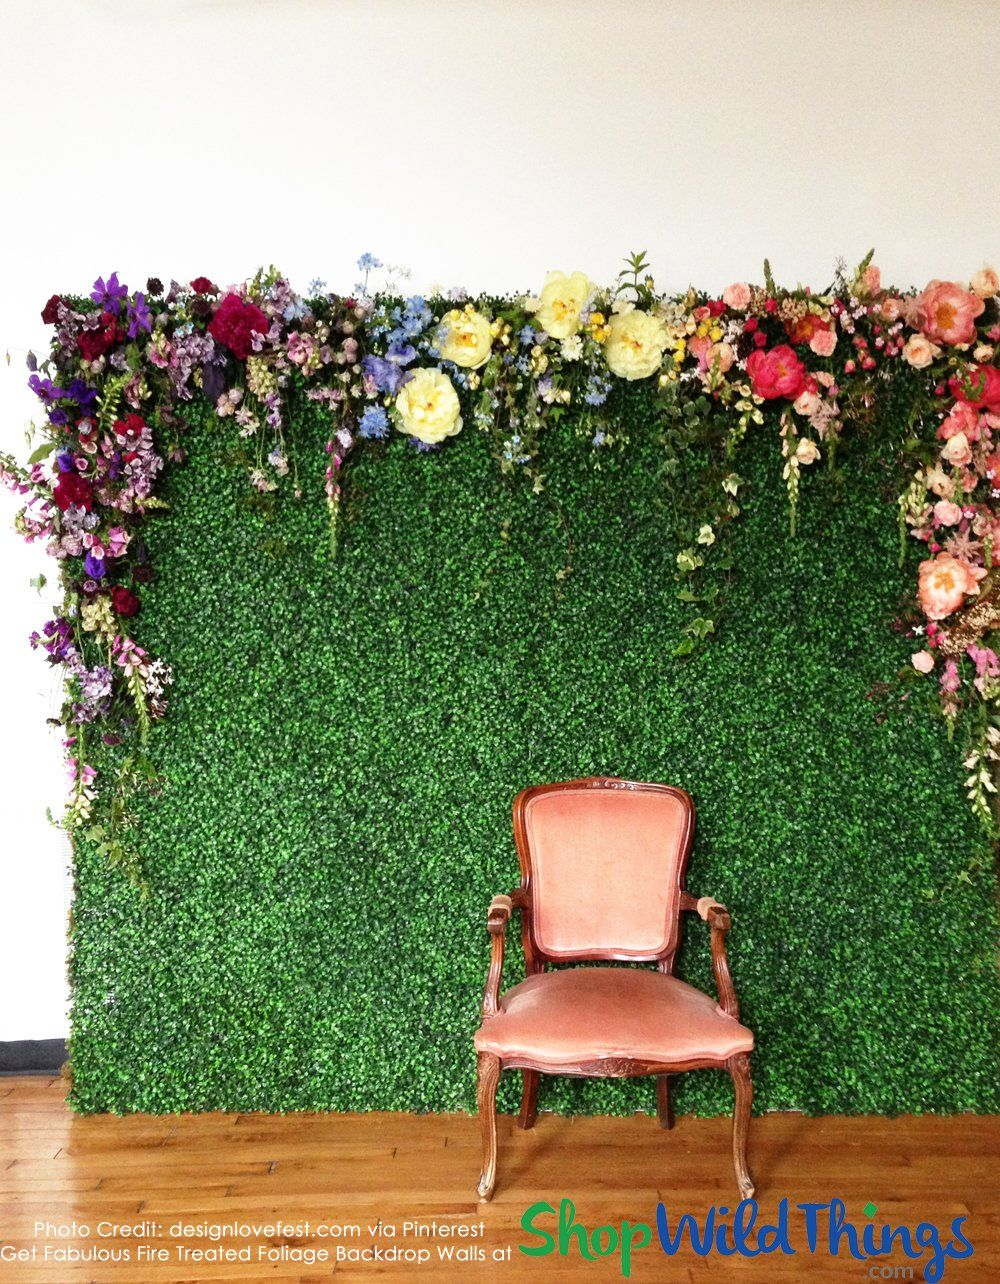 Artificial Greenery & Foliage Backdrops Backdrops for